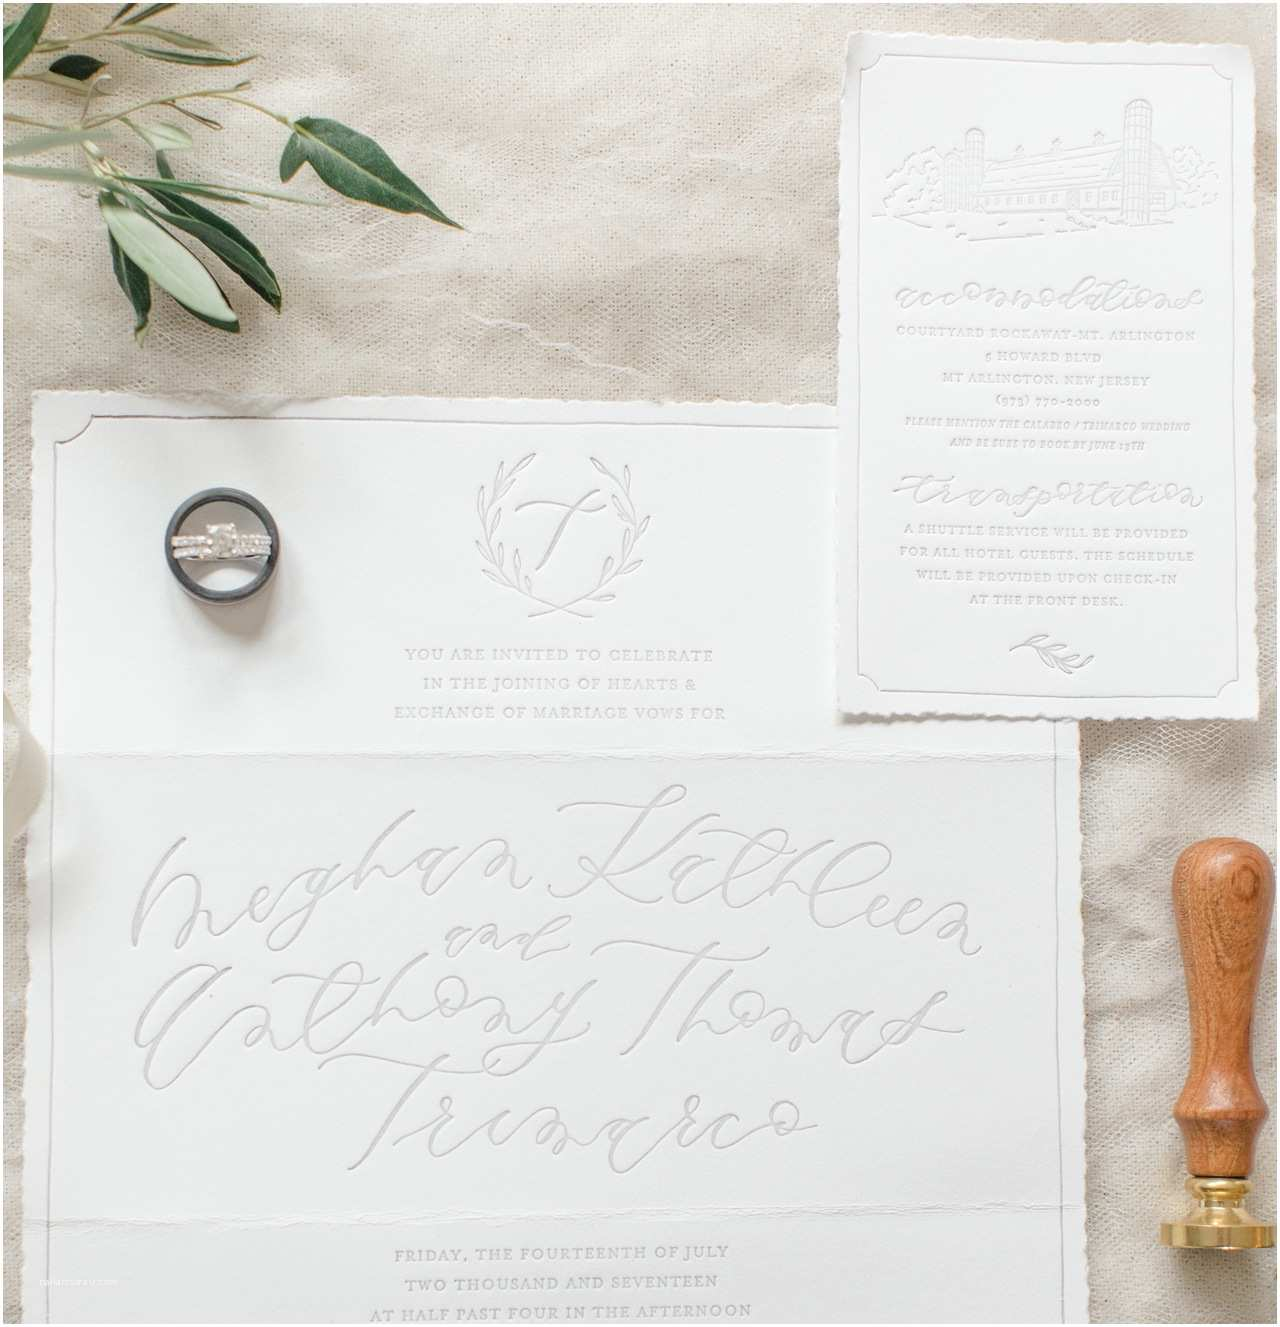 Deckle Edge Paper Wedding Invitations Romantic Gray Calligraphy Wedding Invitations with Deckled